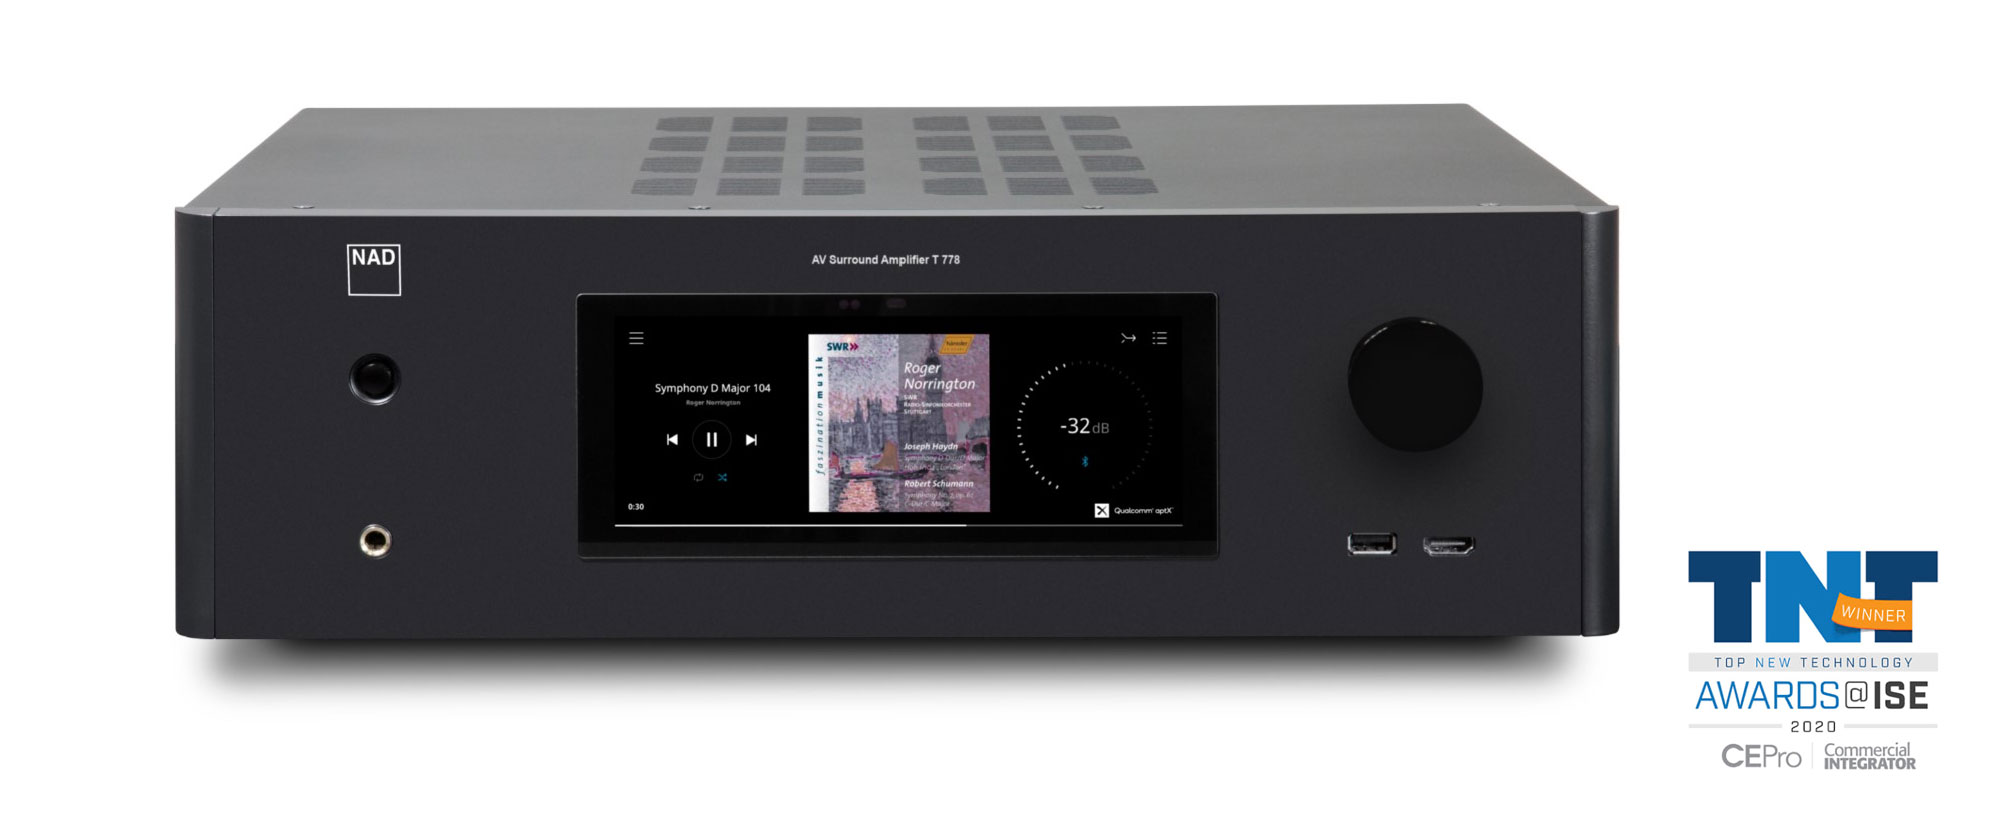 NAD T778 AV SURROUND SOUND RECEIVER praised as TOP NEW TECHNOLOGY WINNER at ISE EXPO in Amsterdam, Feb 2020